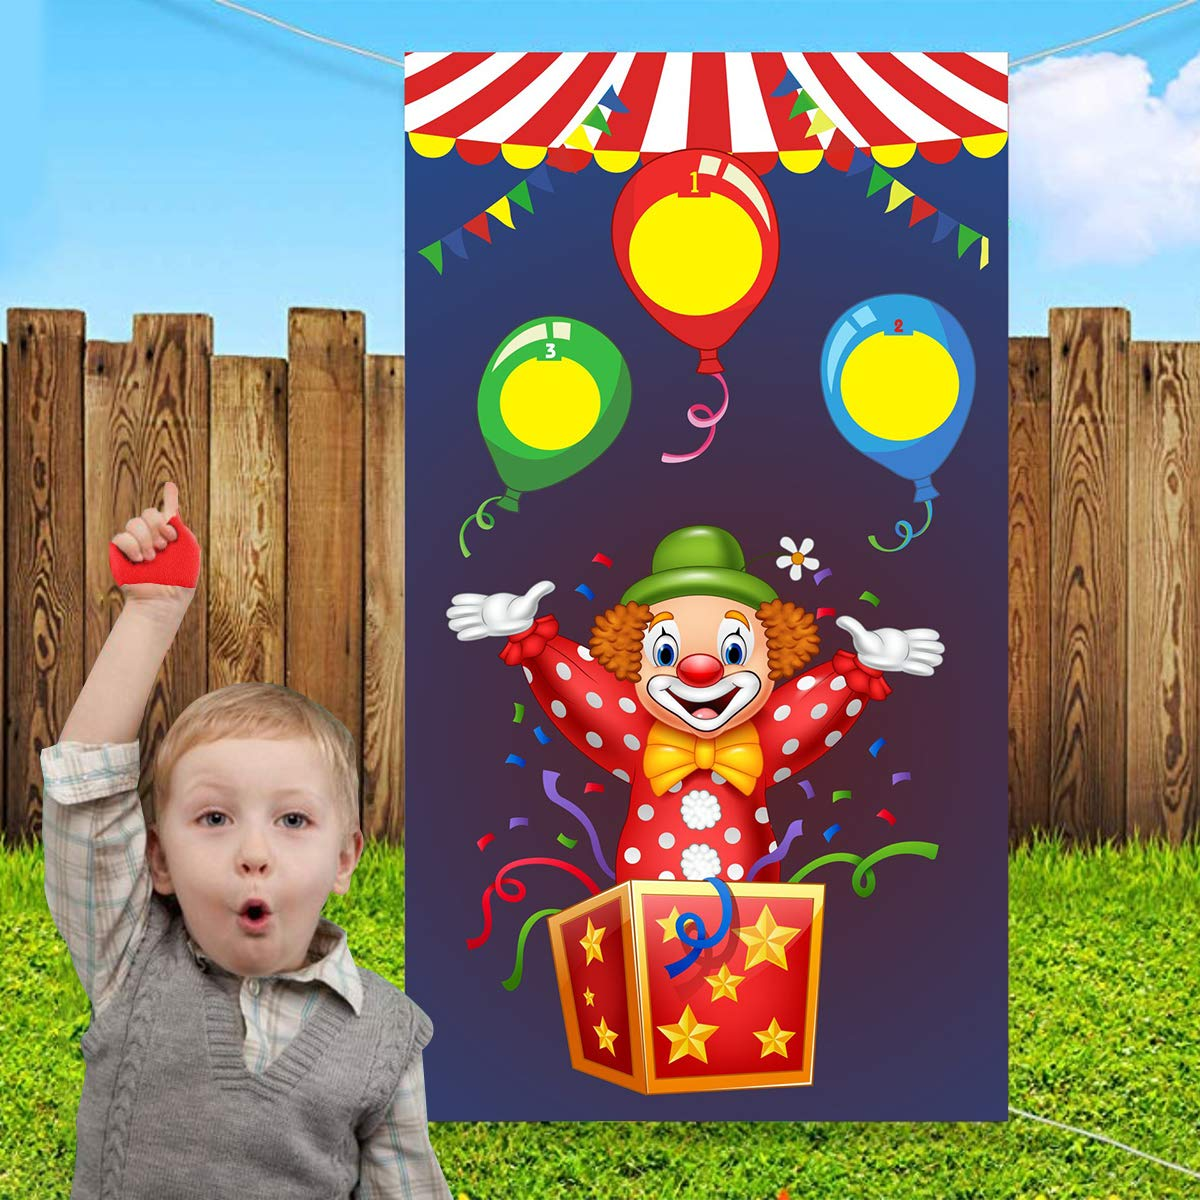 Halloween Carnival Games For Kids.Amazon Com Molecole Halloween Carnival Games Carnival Party